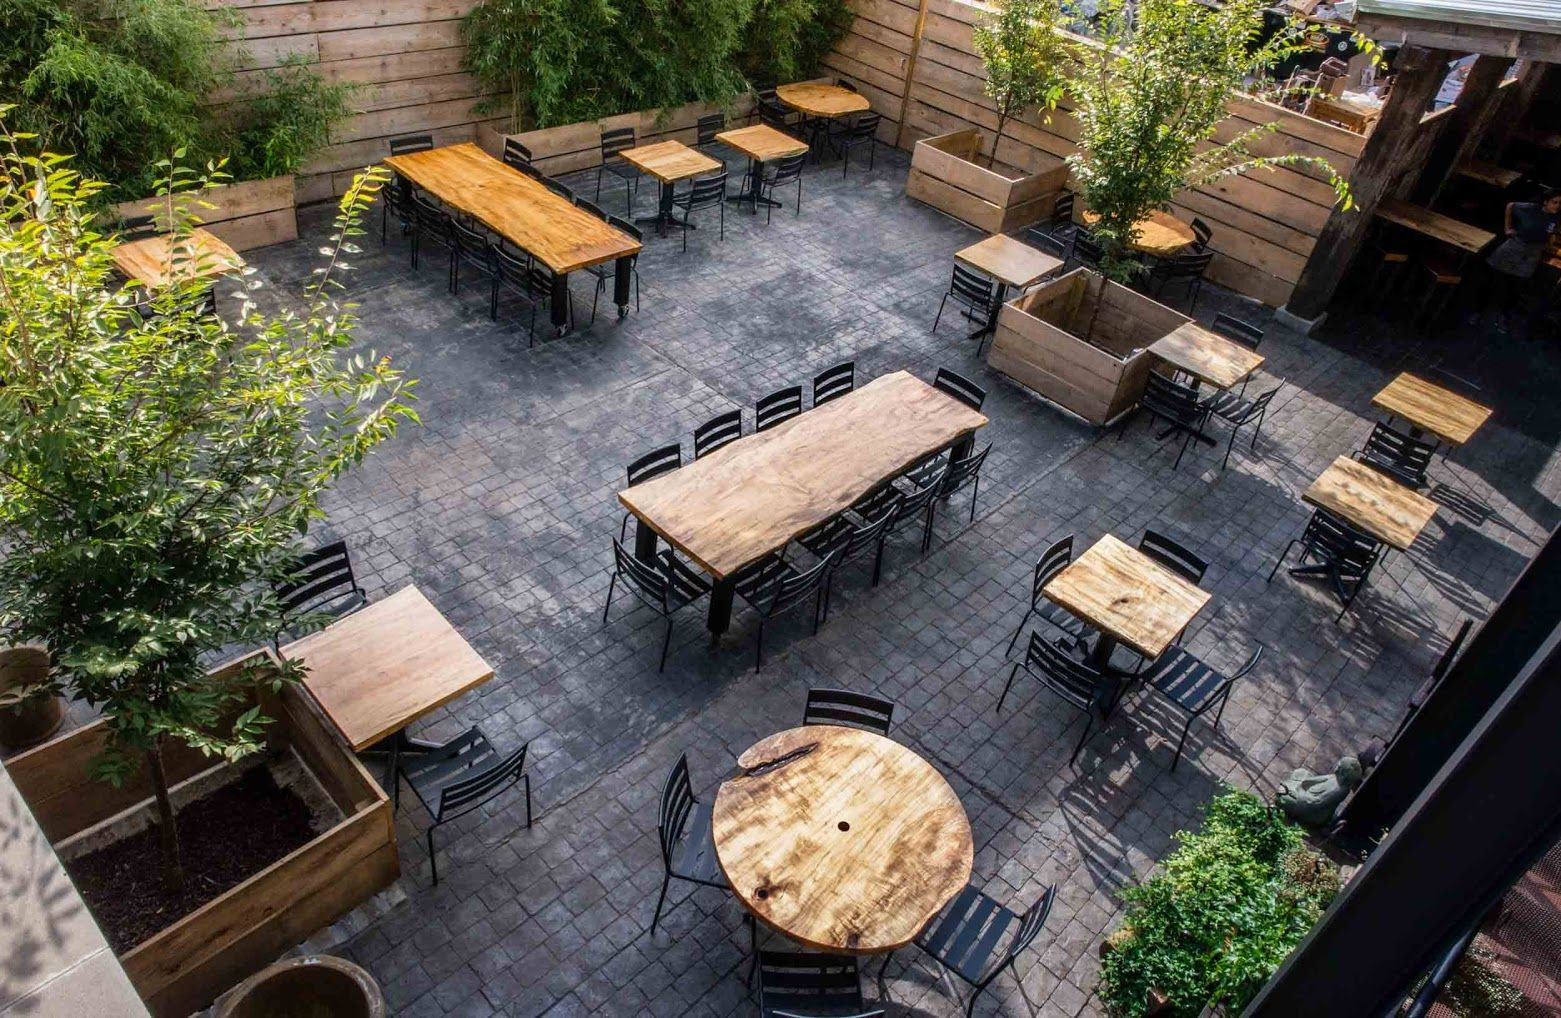 front street cafe u0027s garden patio offering outdoor dining and